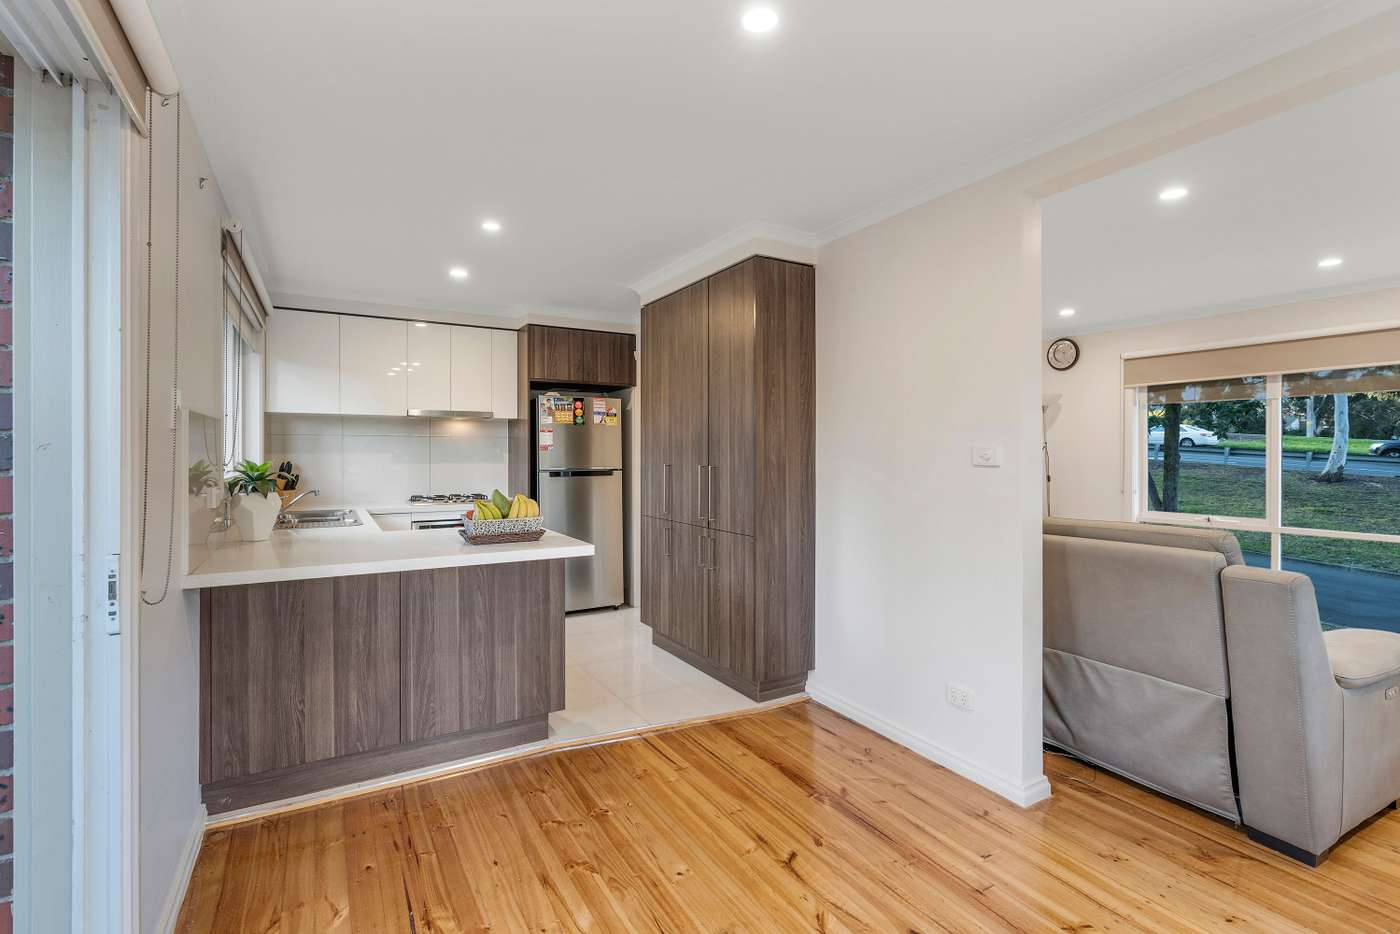 Fifth view of Homely house listing, 6 Mallee Court, Mulgrave VIC 3170